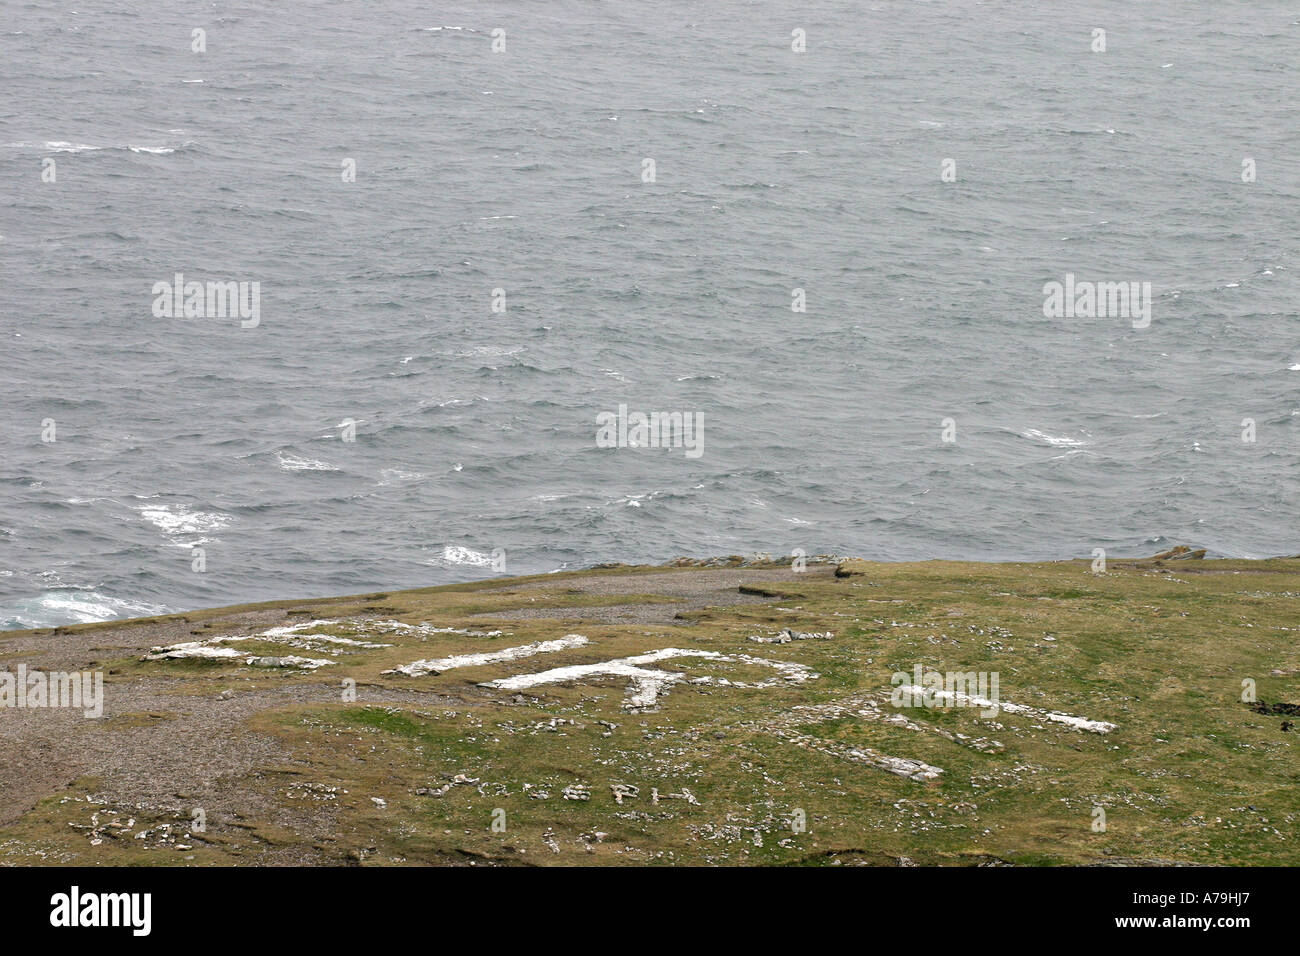 Eire: A sign that spells out Eire in rocks on a pasture on the stormy north west coast of Ireland announcing the island's name - Stock Image